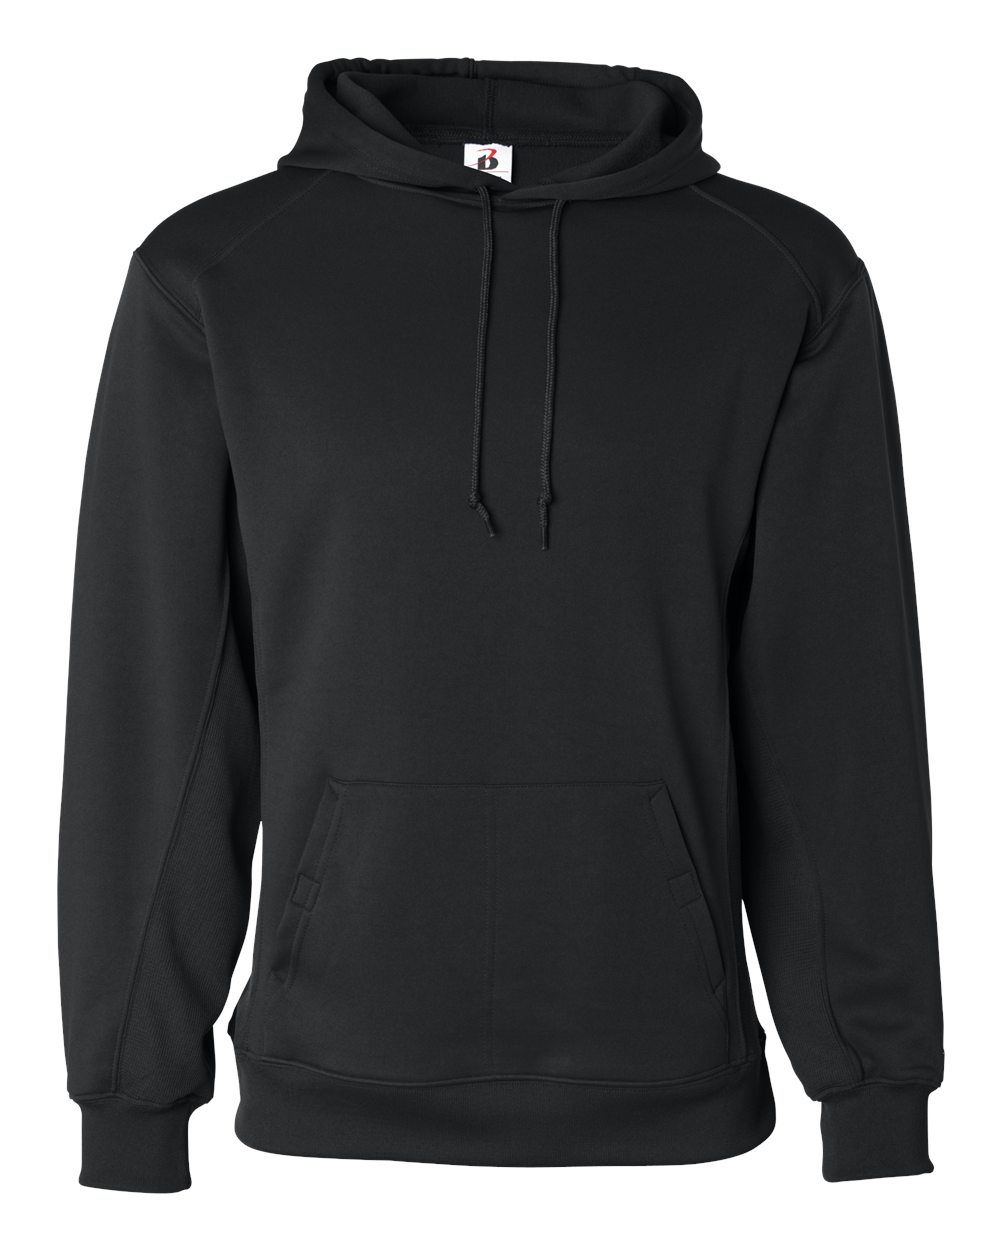 Badger Sport 1454 Performance Fleece Hooded Sweatshirt